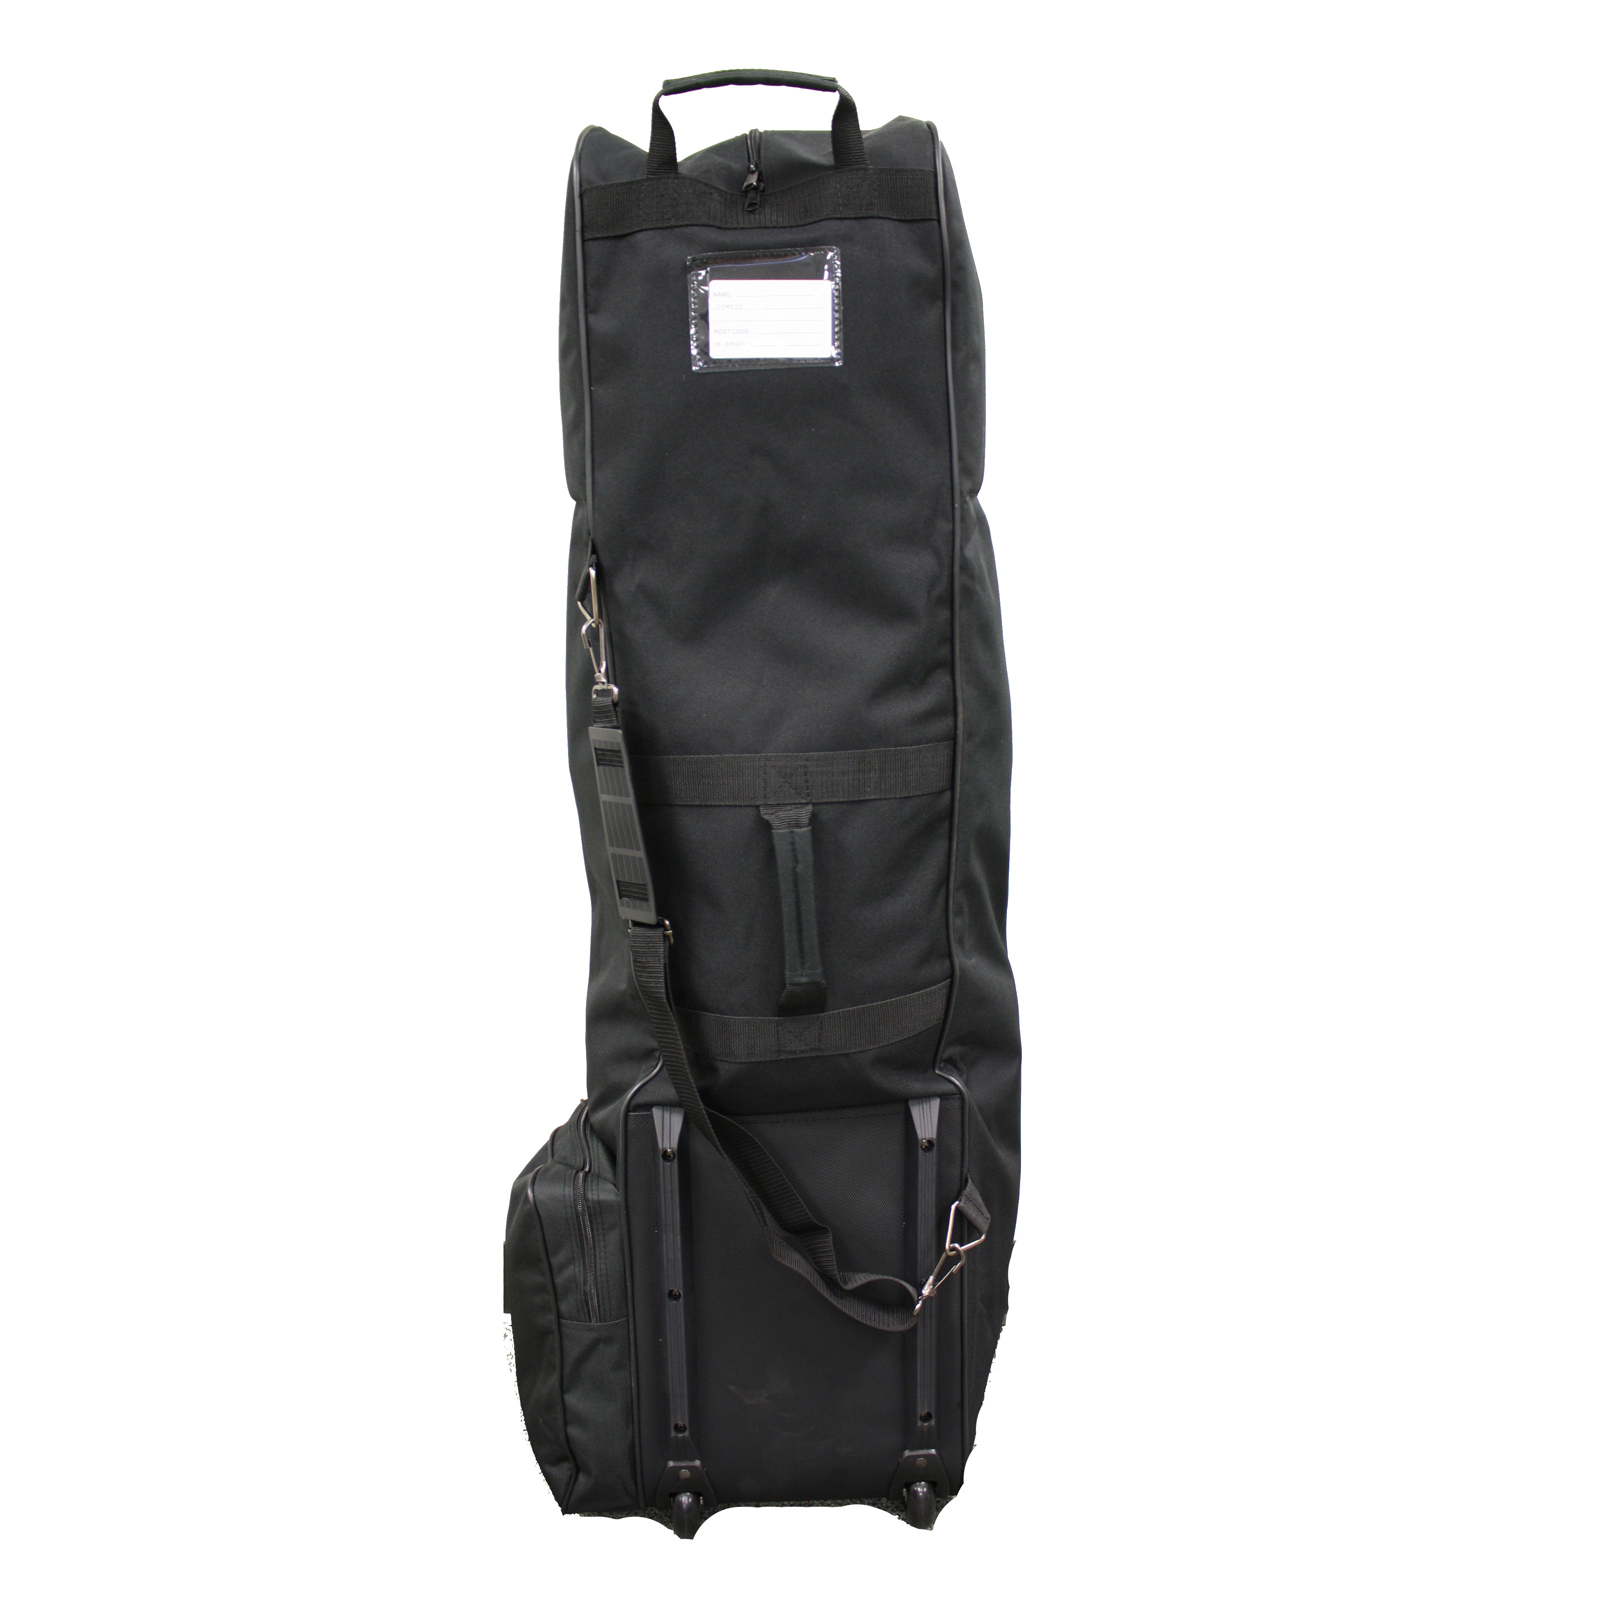 Ec 9717 golf travel  bag